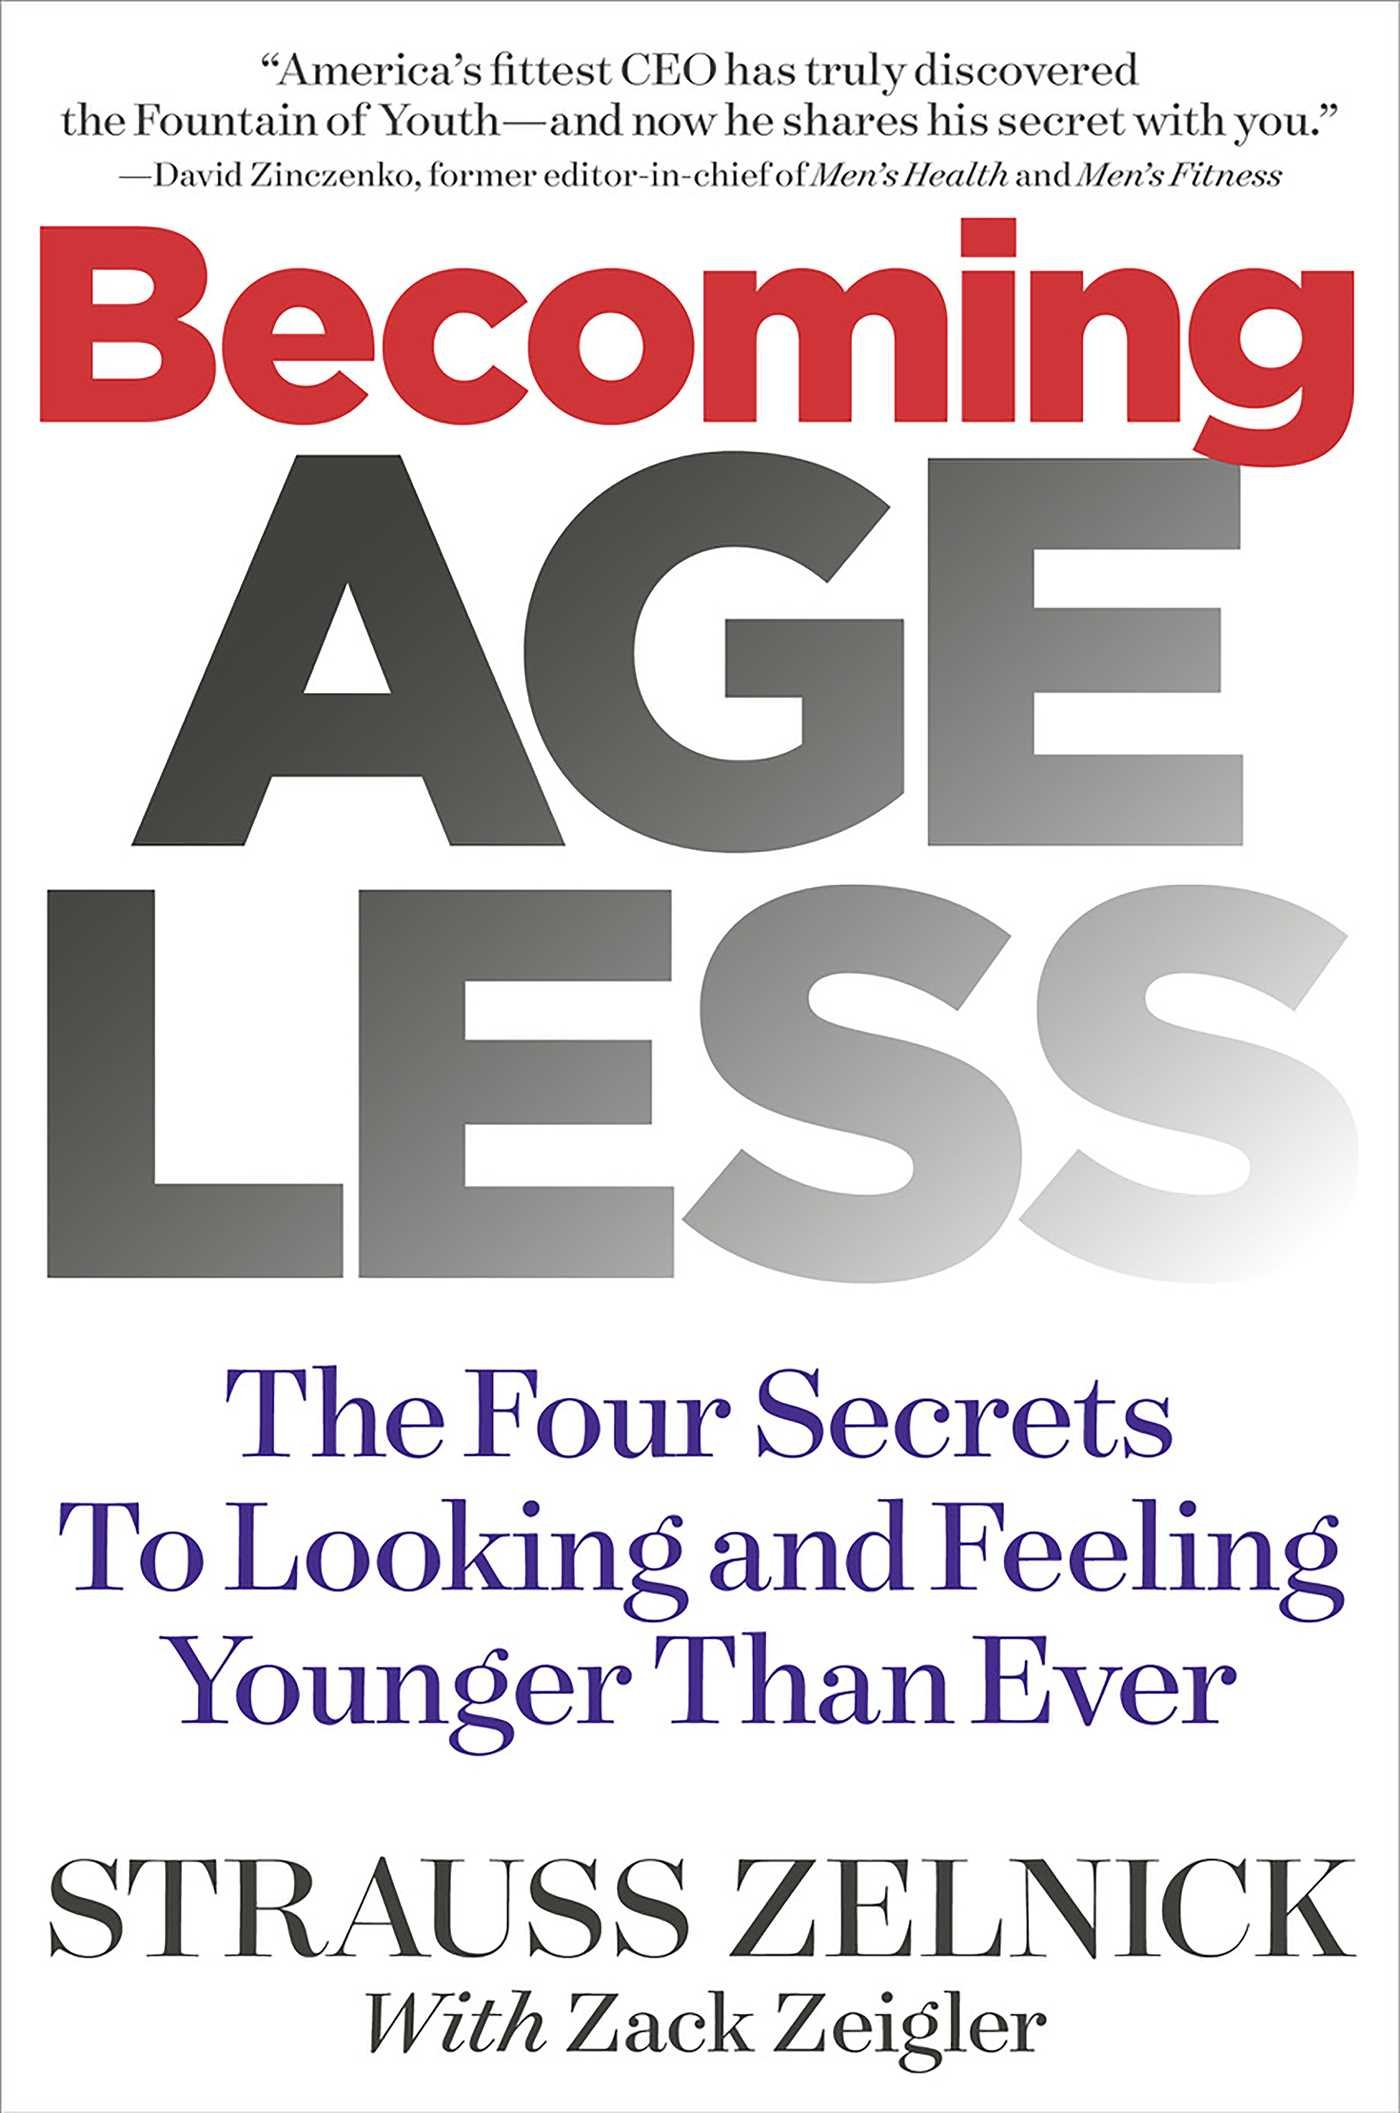 Becoming Ageless: The Four Secrets to Looking and Feeling Younger Than  Ever: Strauss Zelnick: 9781940358178: Amazon.com: Books